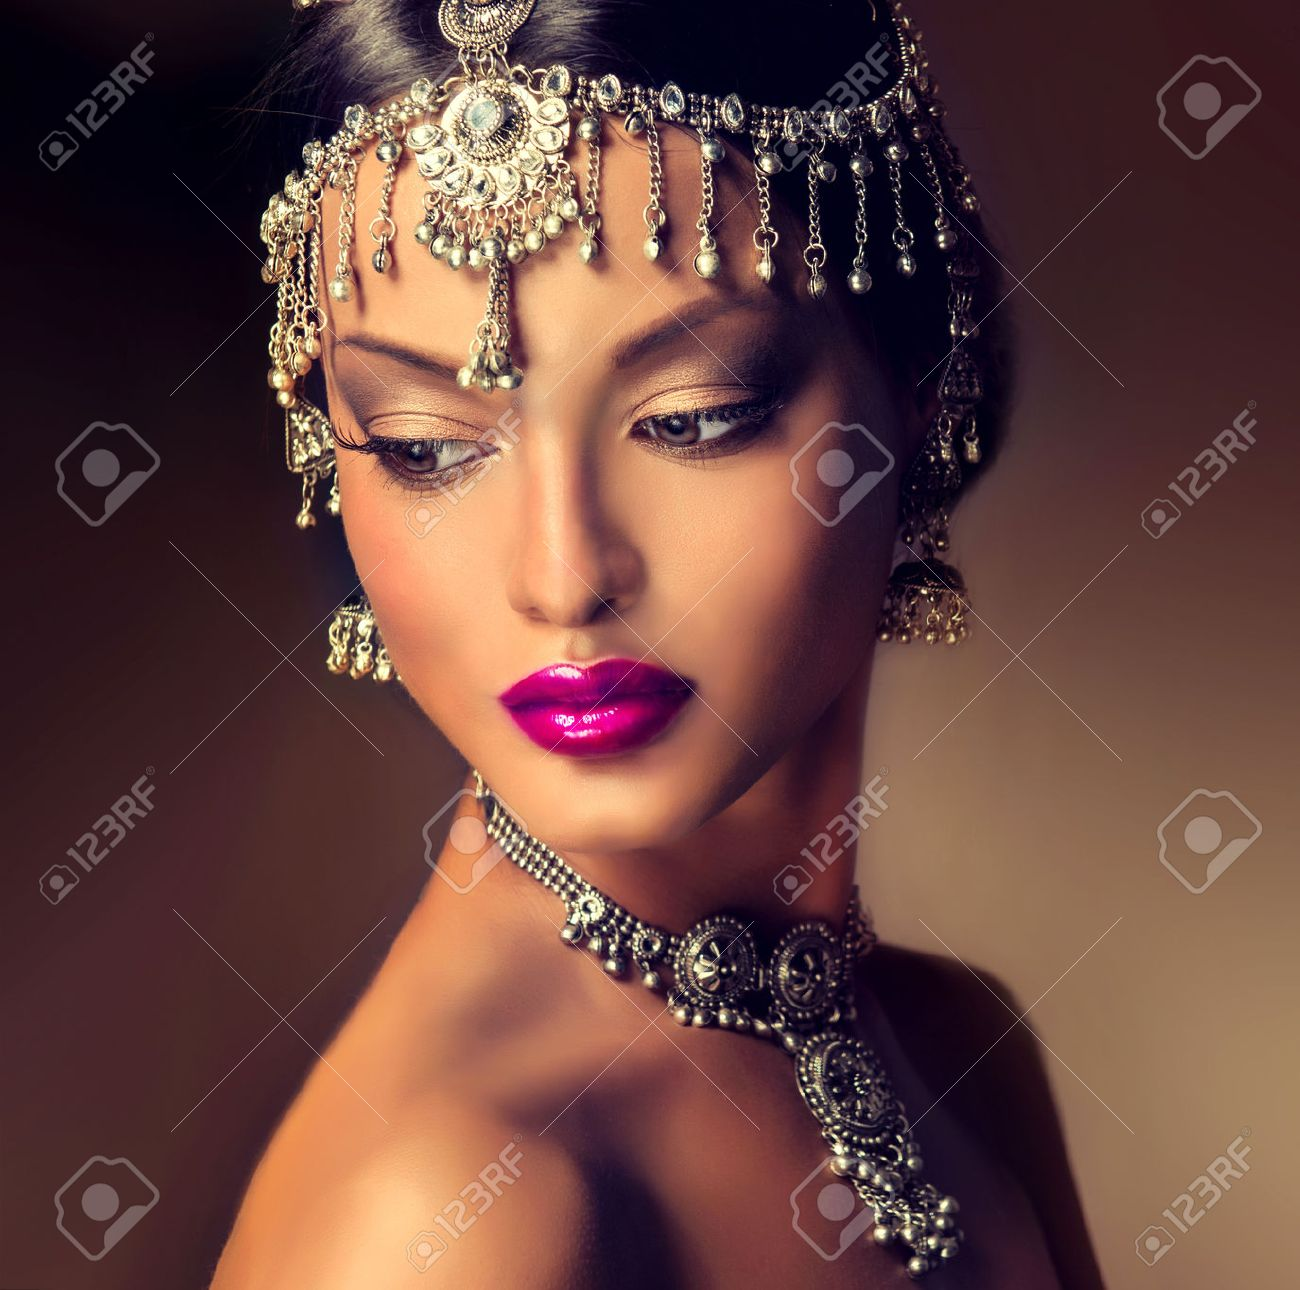 c4c8777ffb Beautiful Indian women portrait with jewelry. elegant Indian girl looking  to the side, bollywood